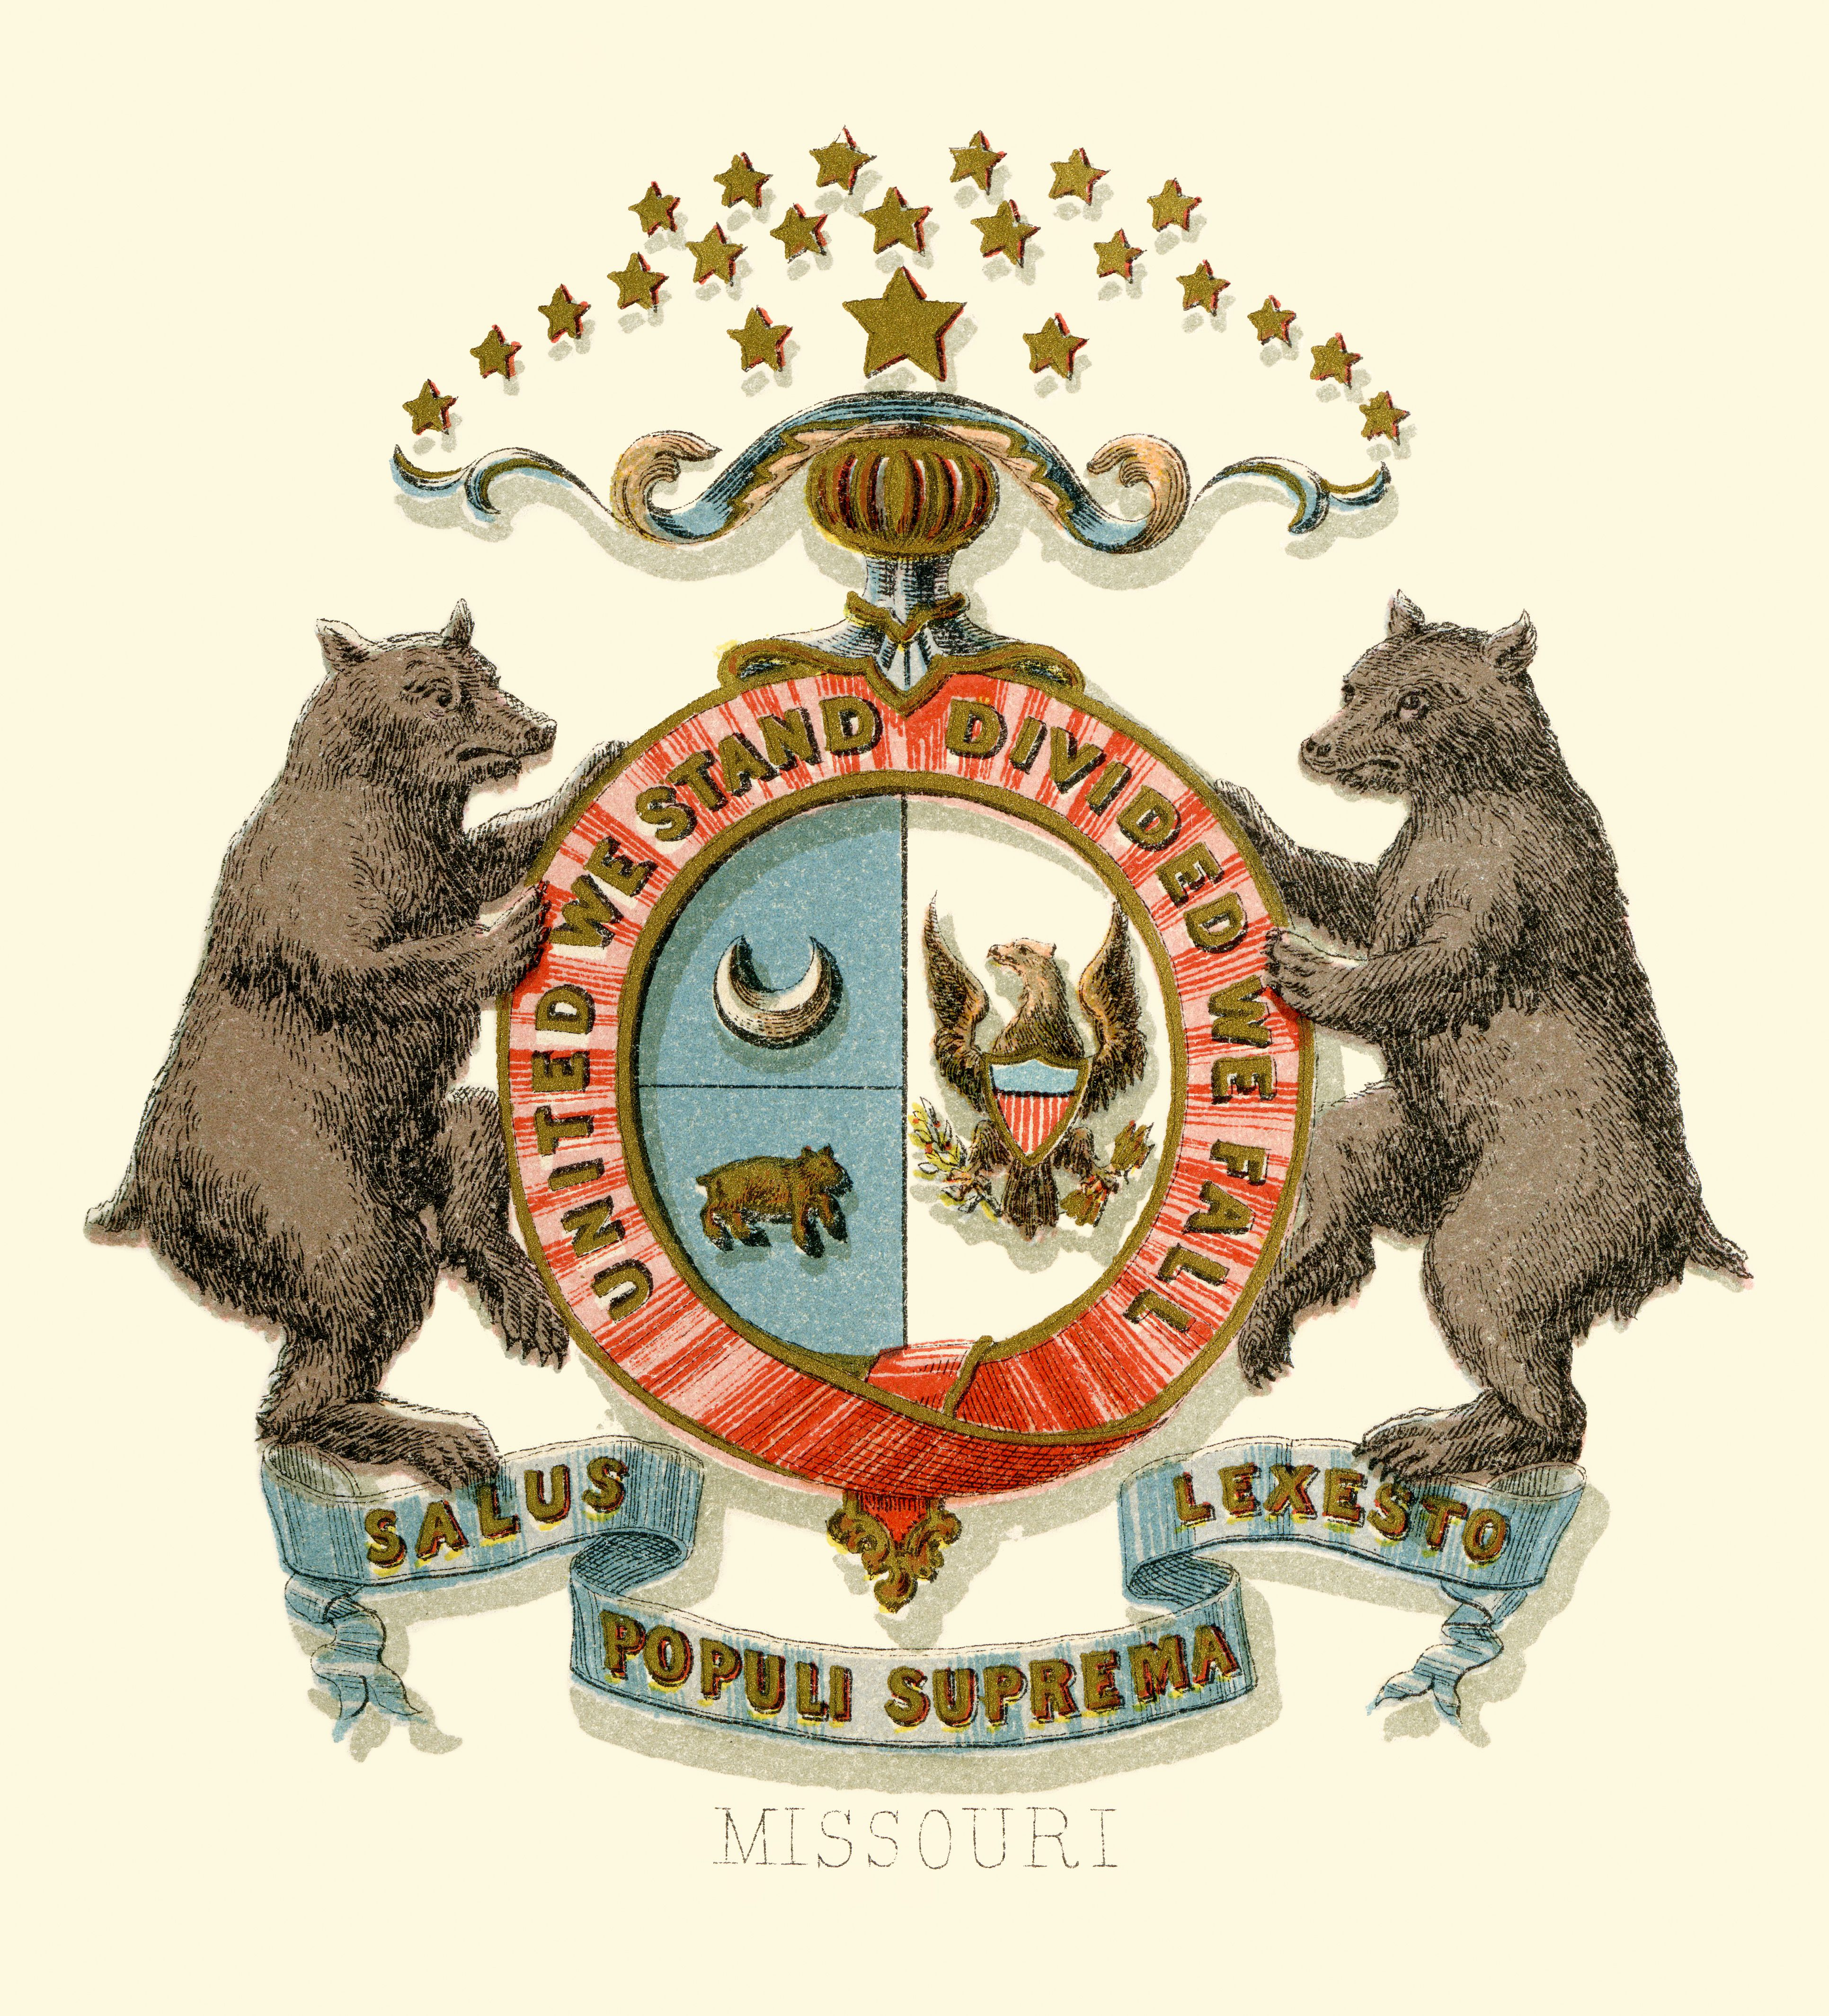 Missouri State Coat Of Arms Illustrated